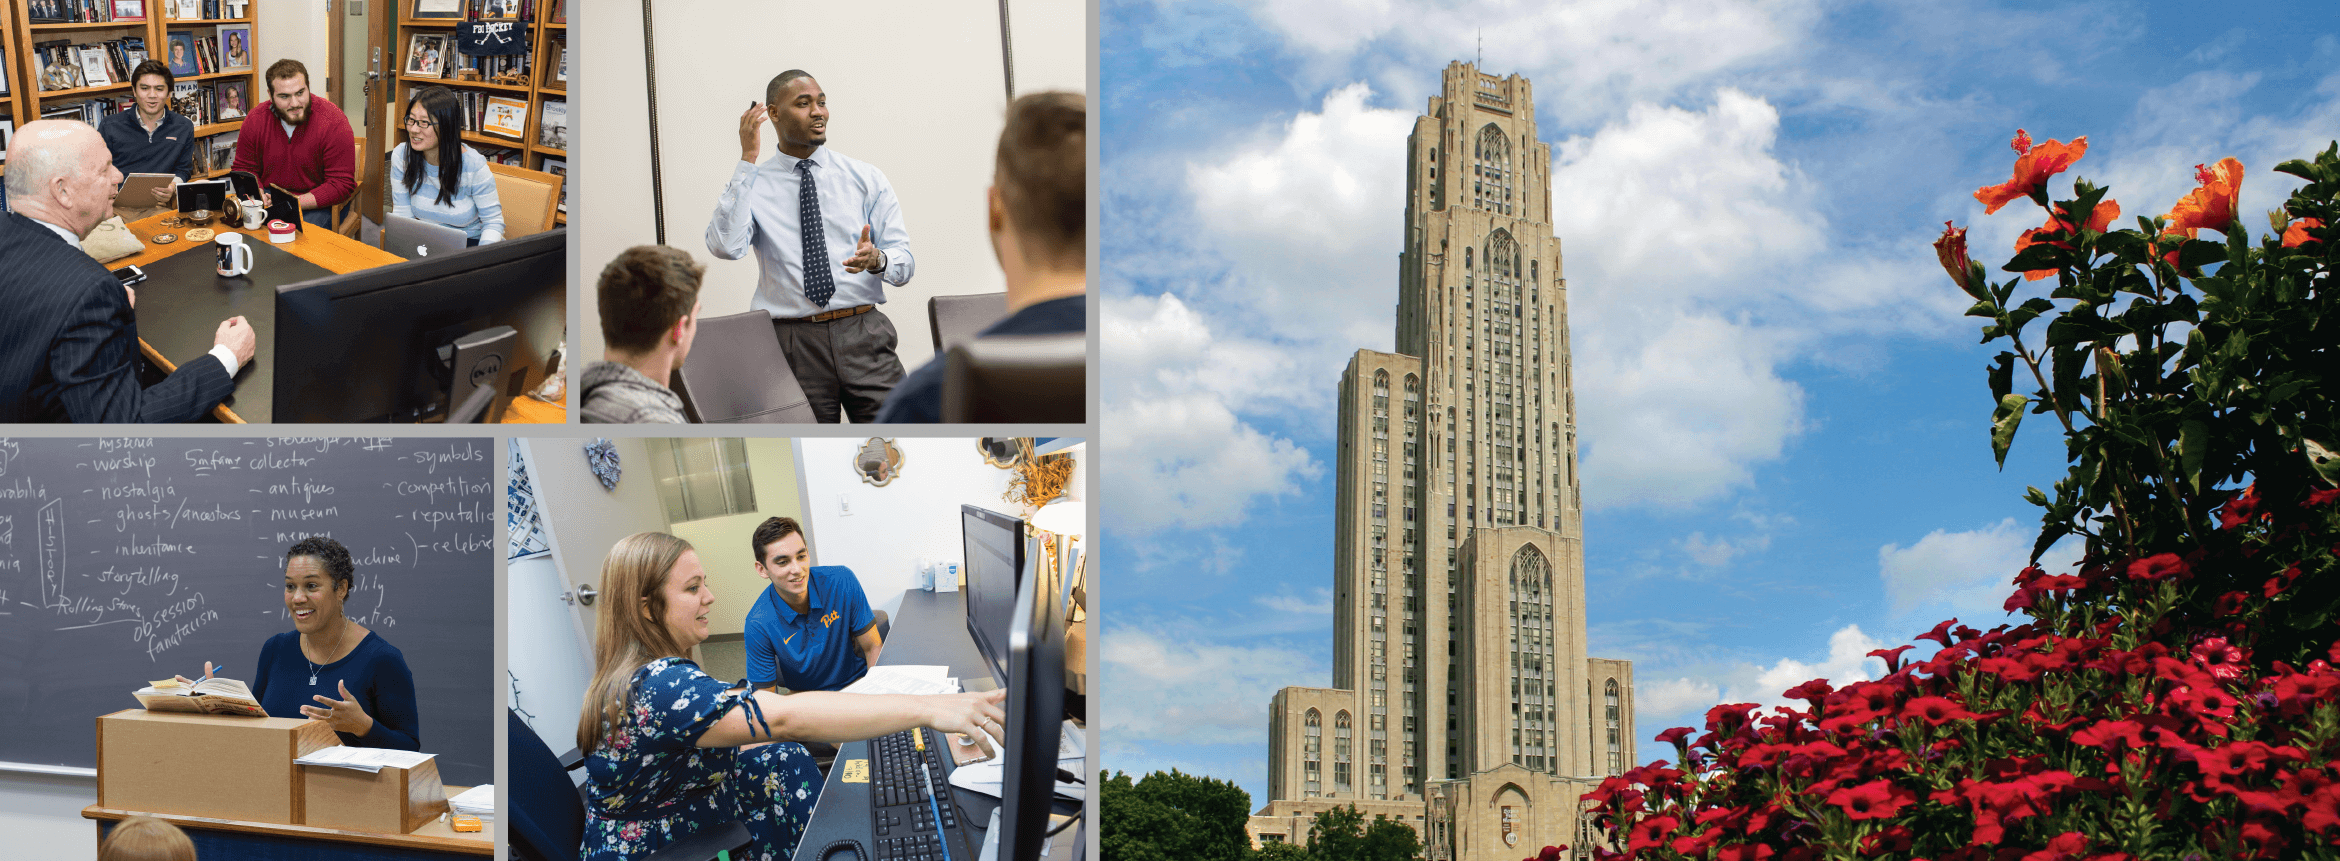 collage photo of pitt staff and faculty